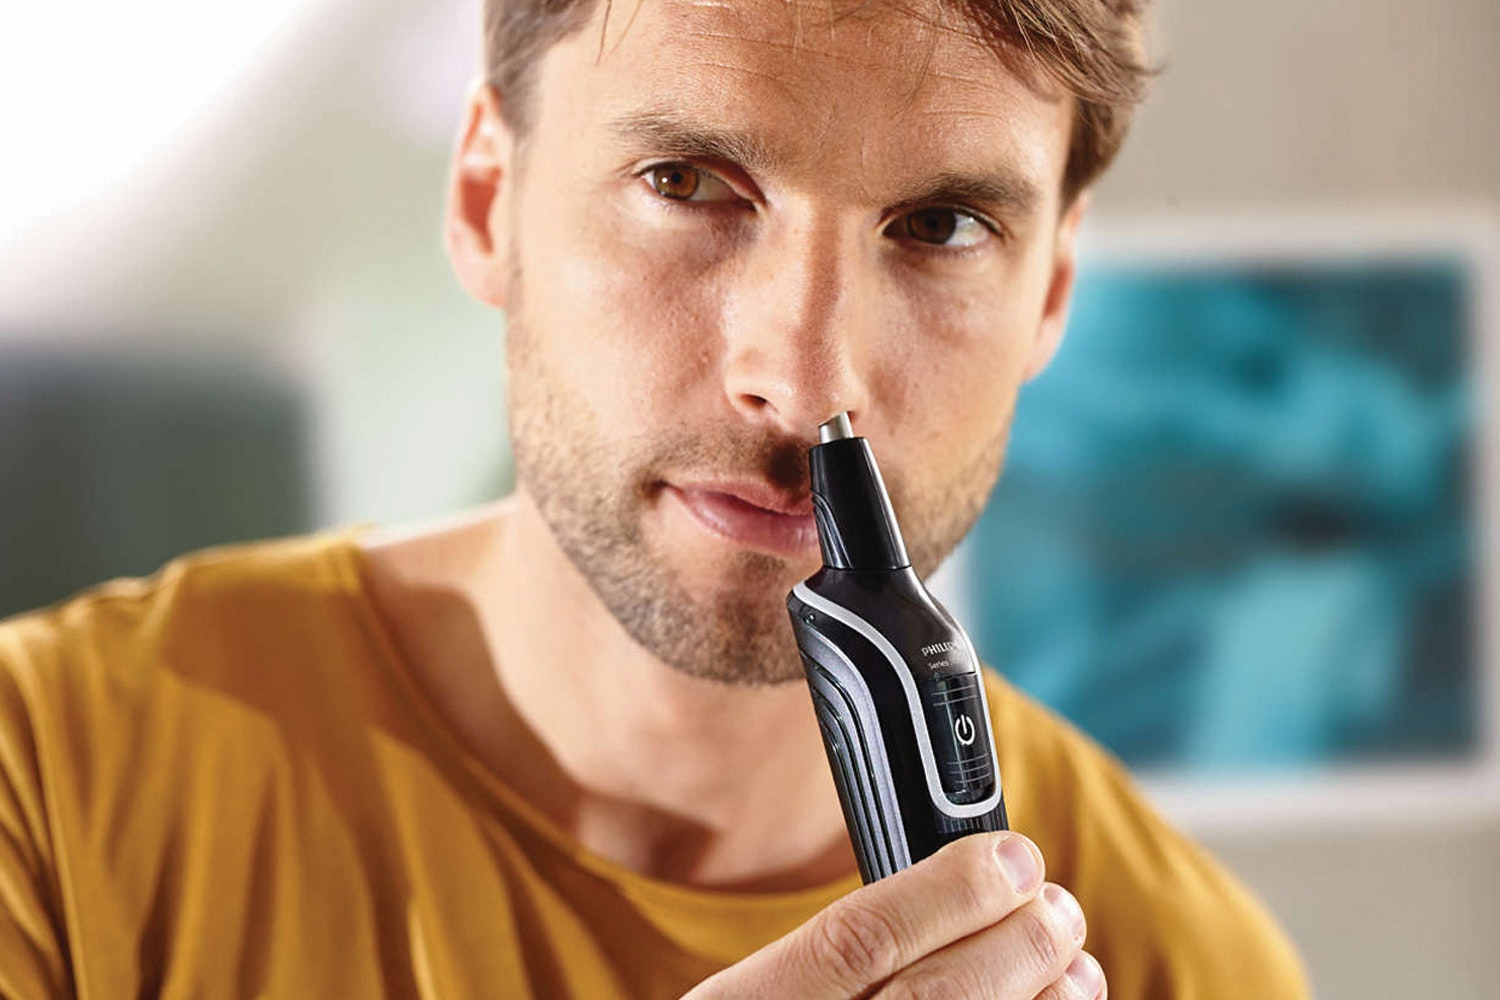 Philips Multigroom 3-in-1 Beard and Detail Trimmer